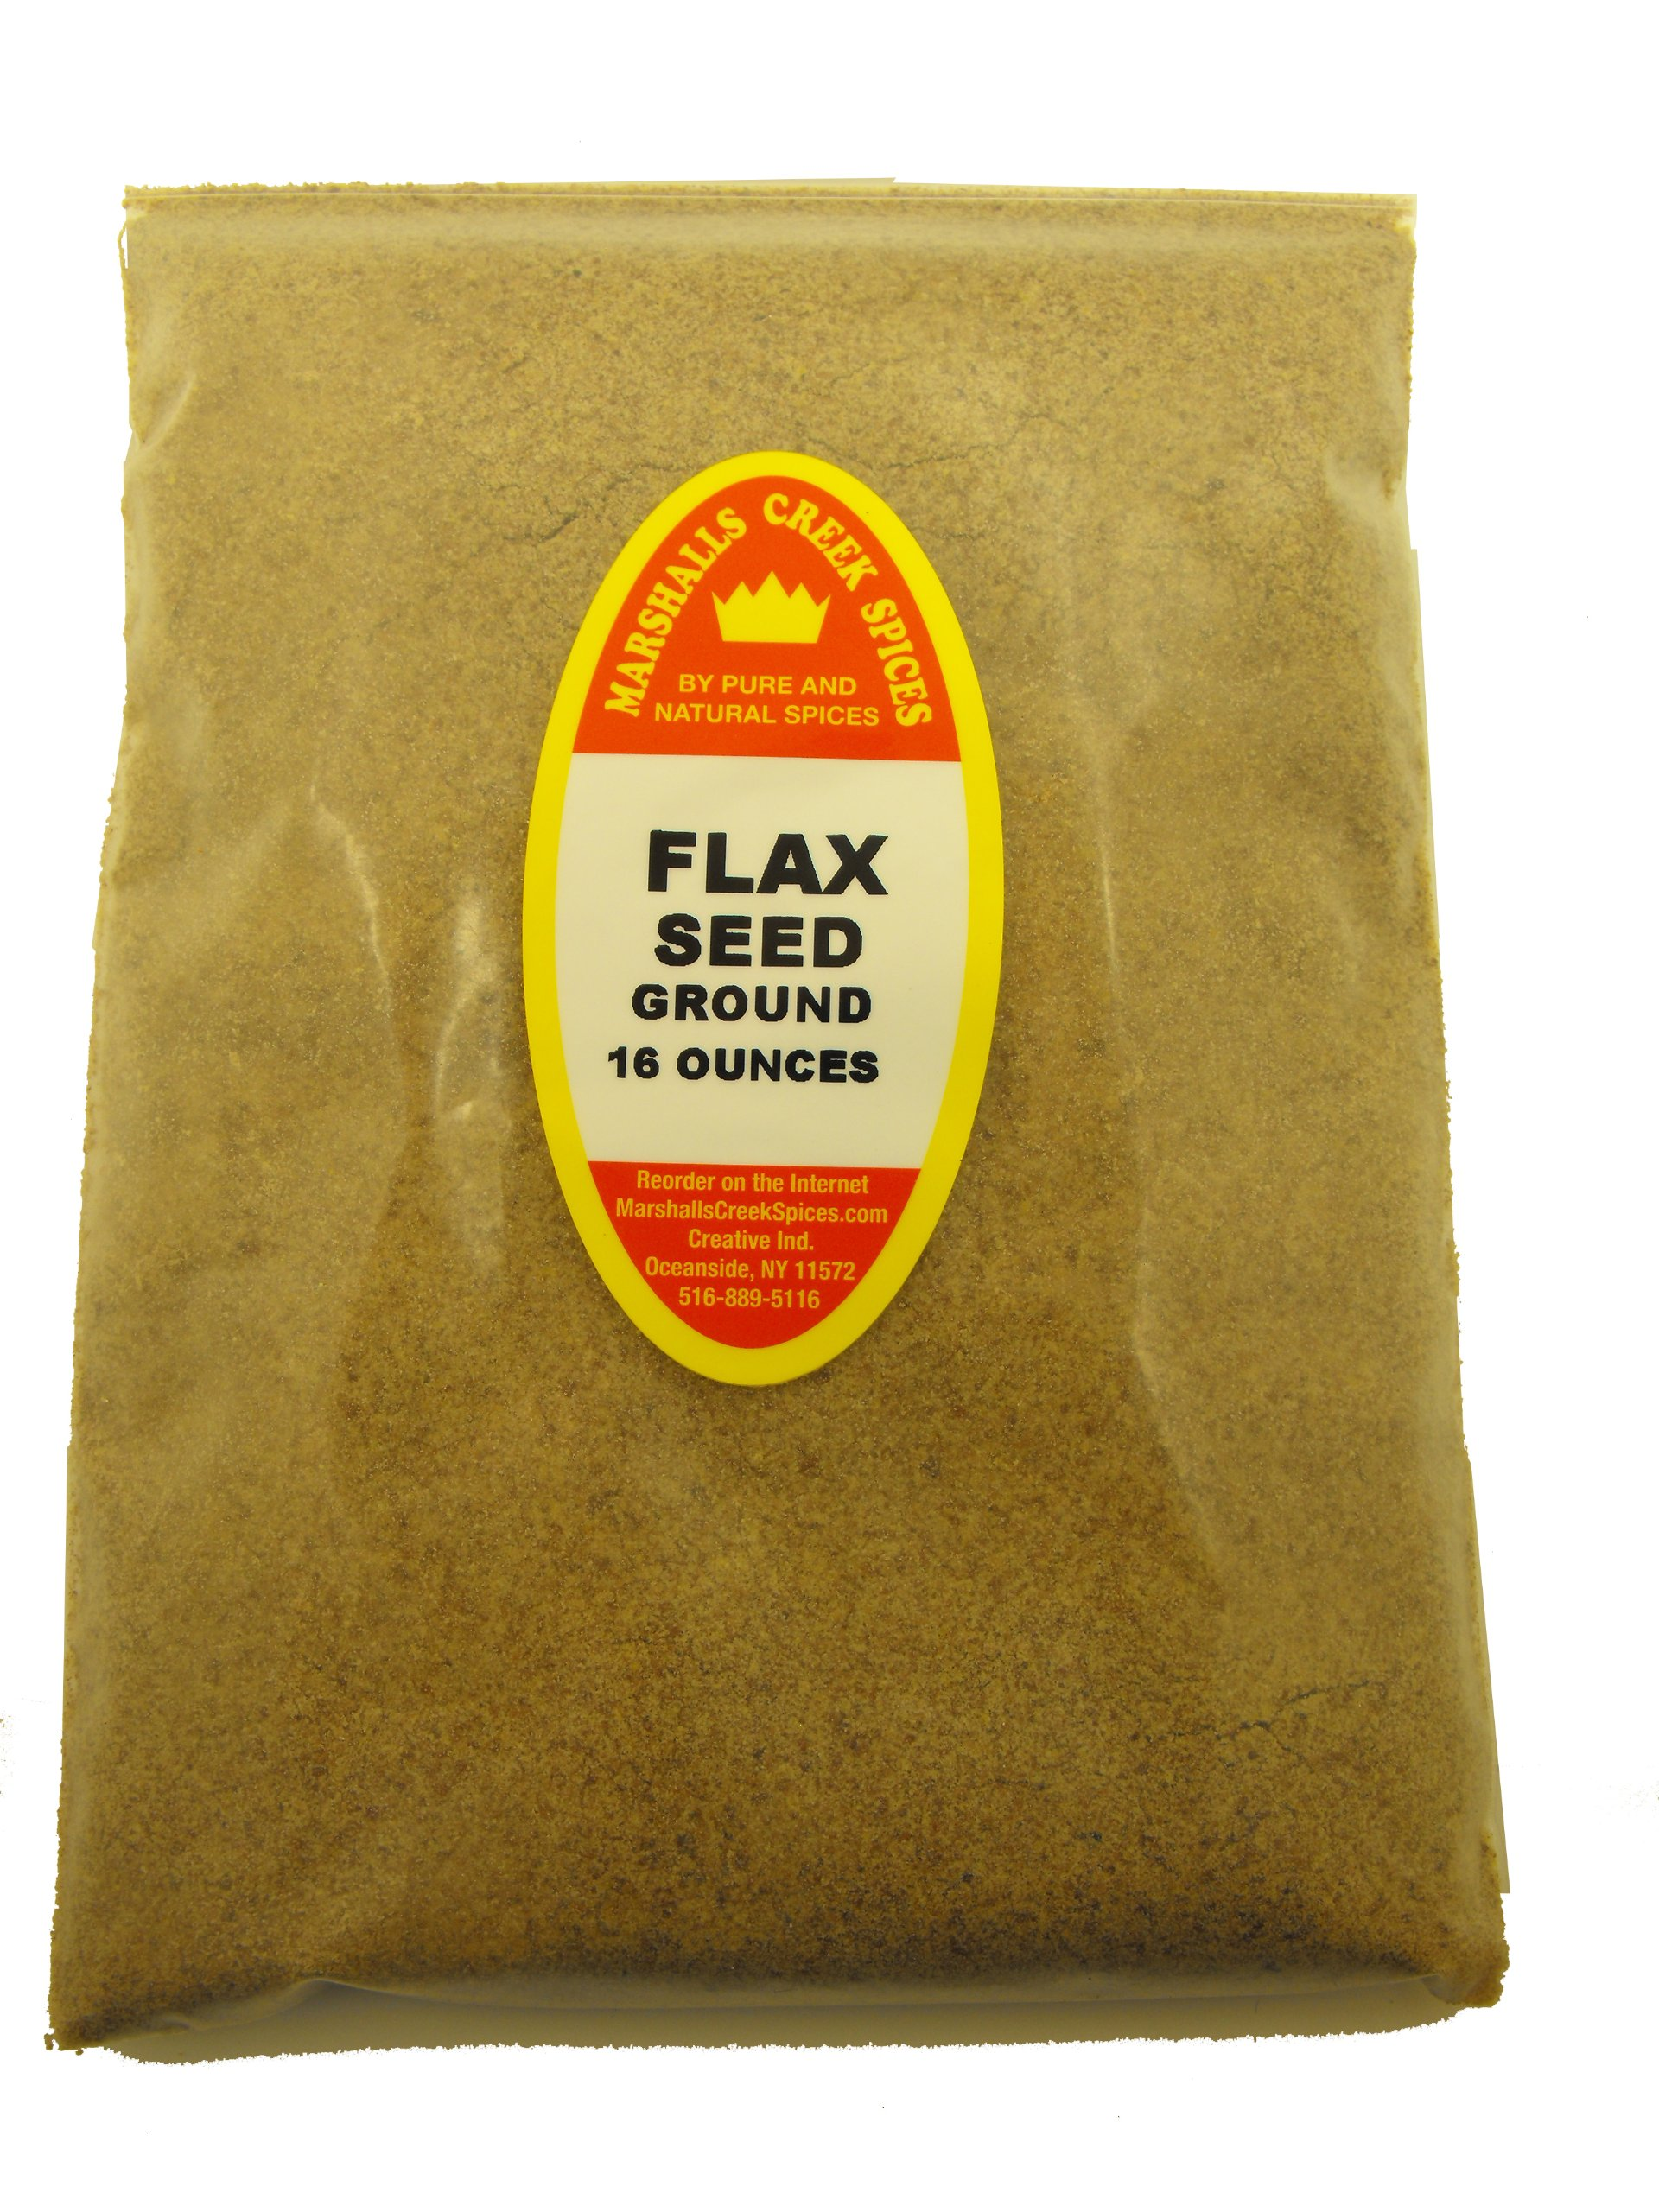 XL REFILL Marshalls Creek Spices Flax Seed Ground Seasoning, 16 Ounce